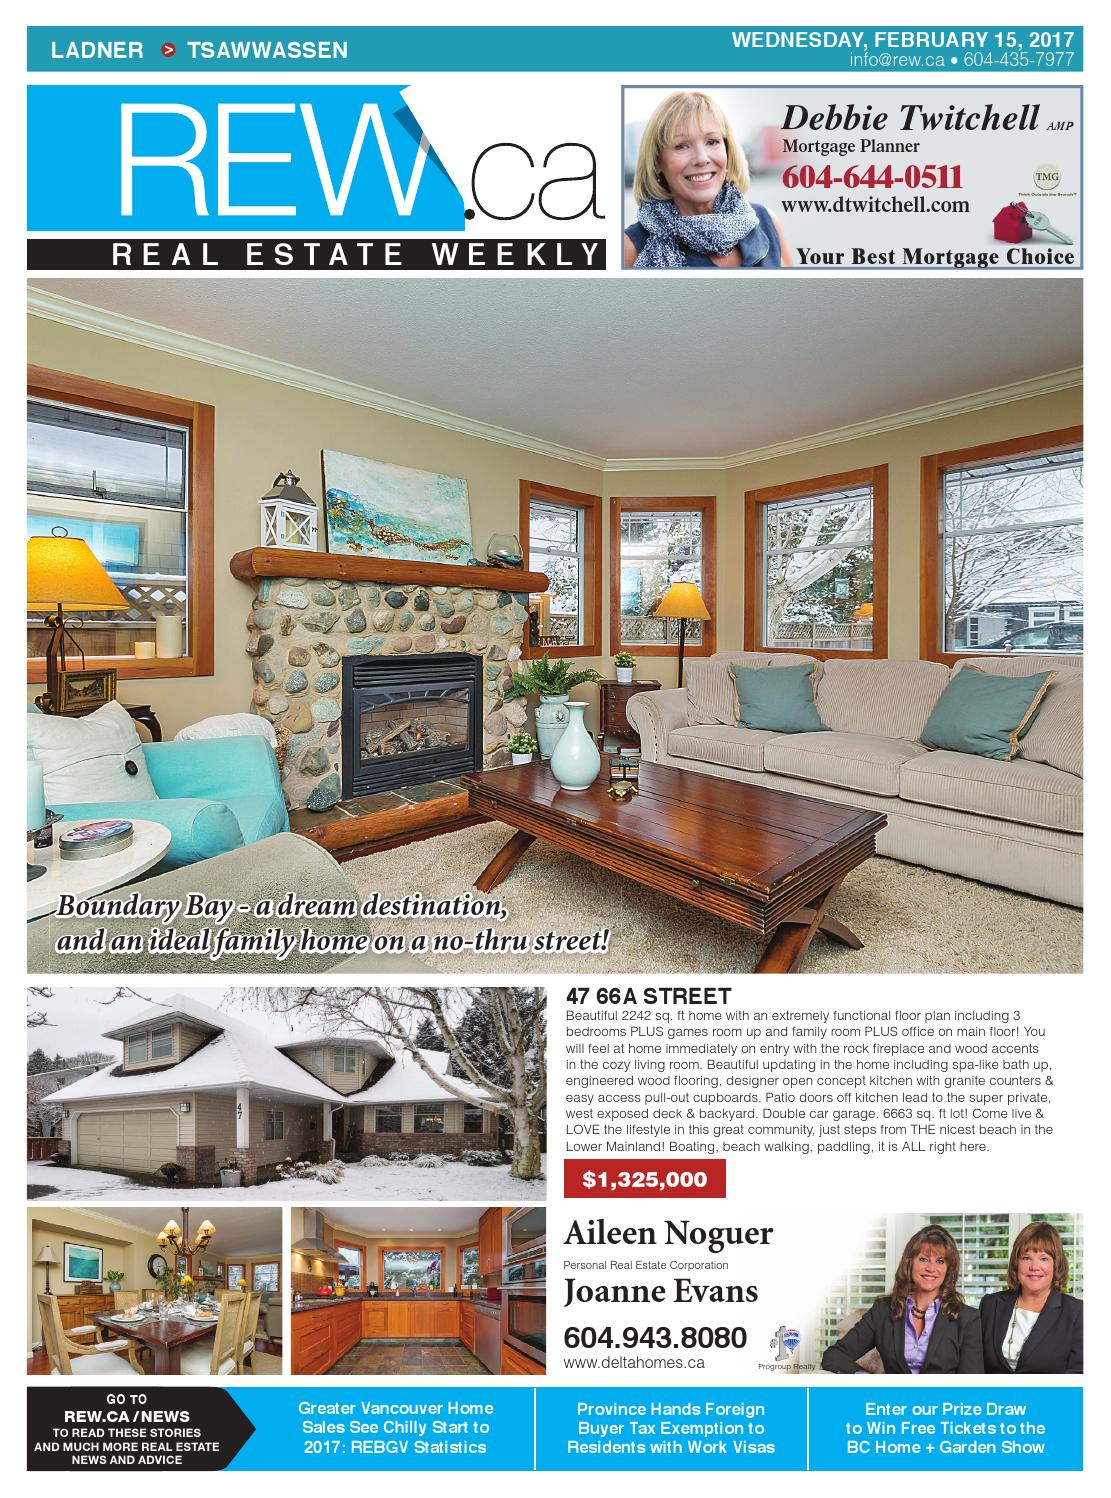 Superb LADNER / TSAWWASSEN Feb 15, 2017 Real Estate Weekly By Real Estate Weekly    Issuu